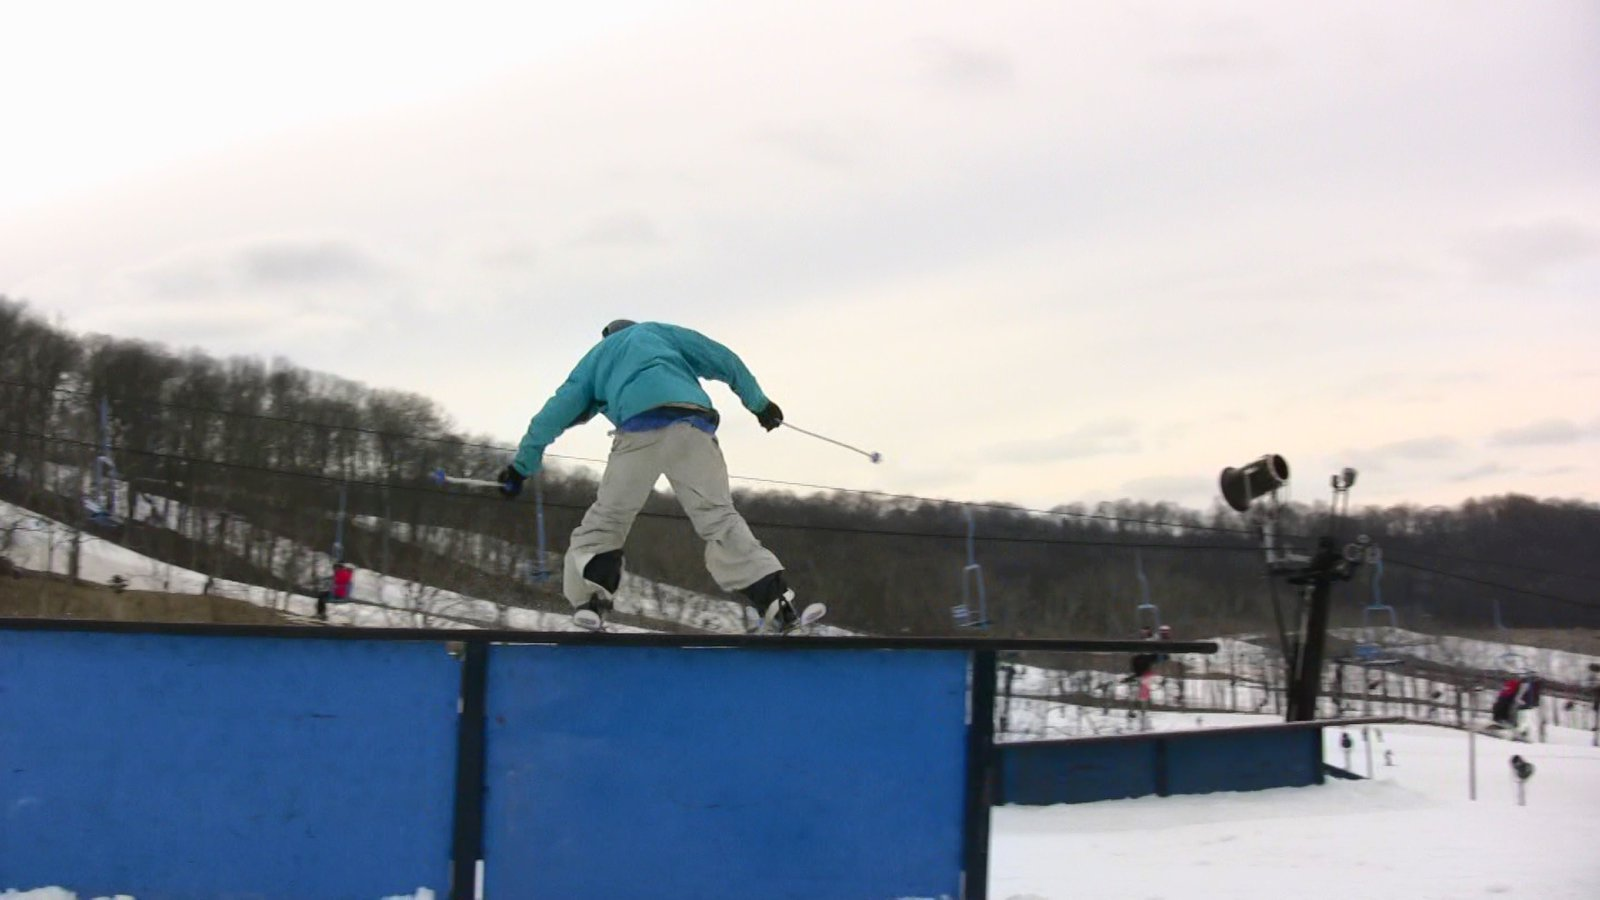 Video still: sam on tall-t rail